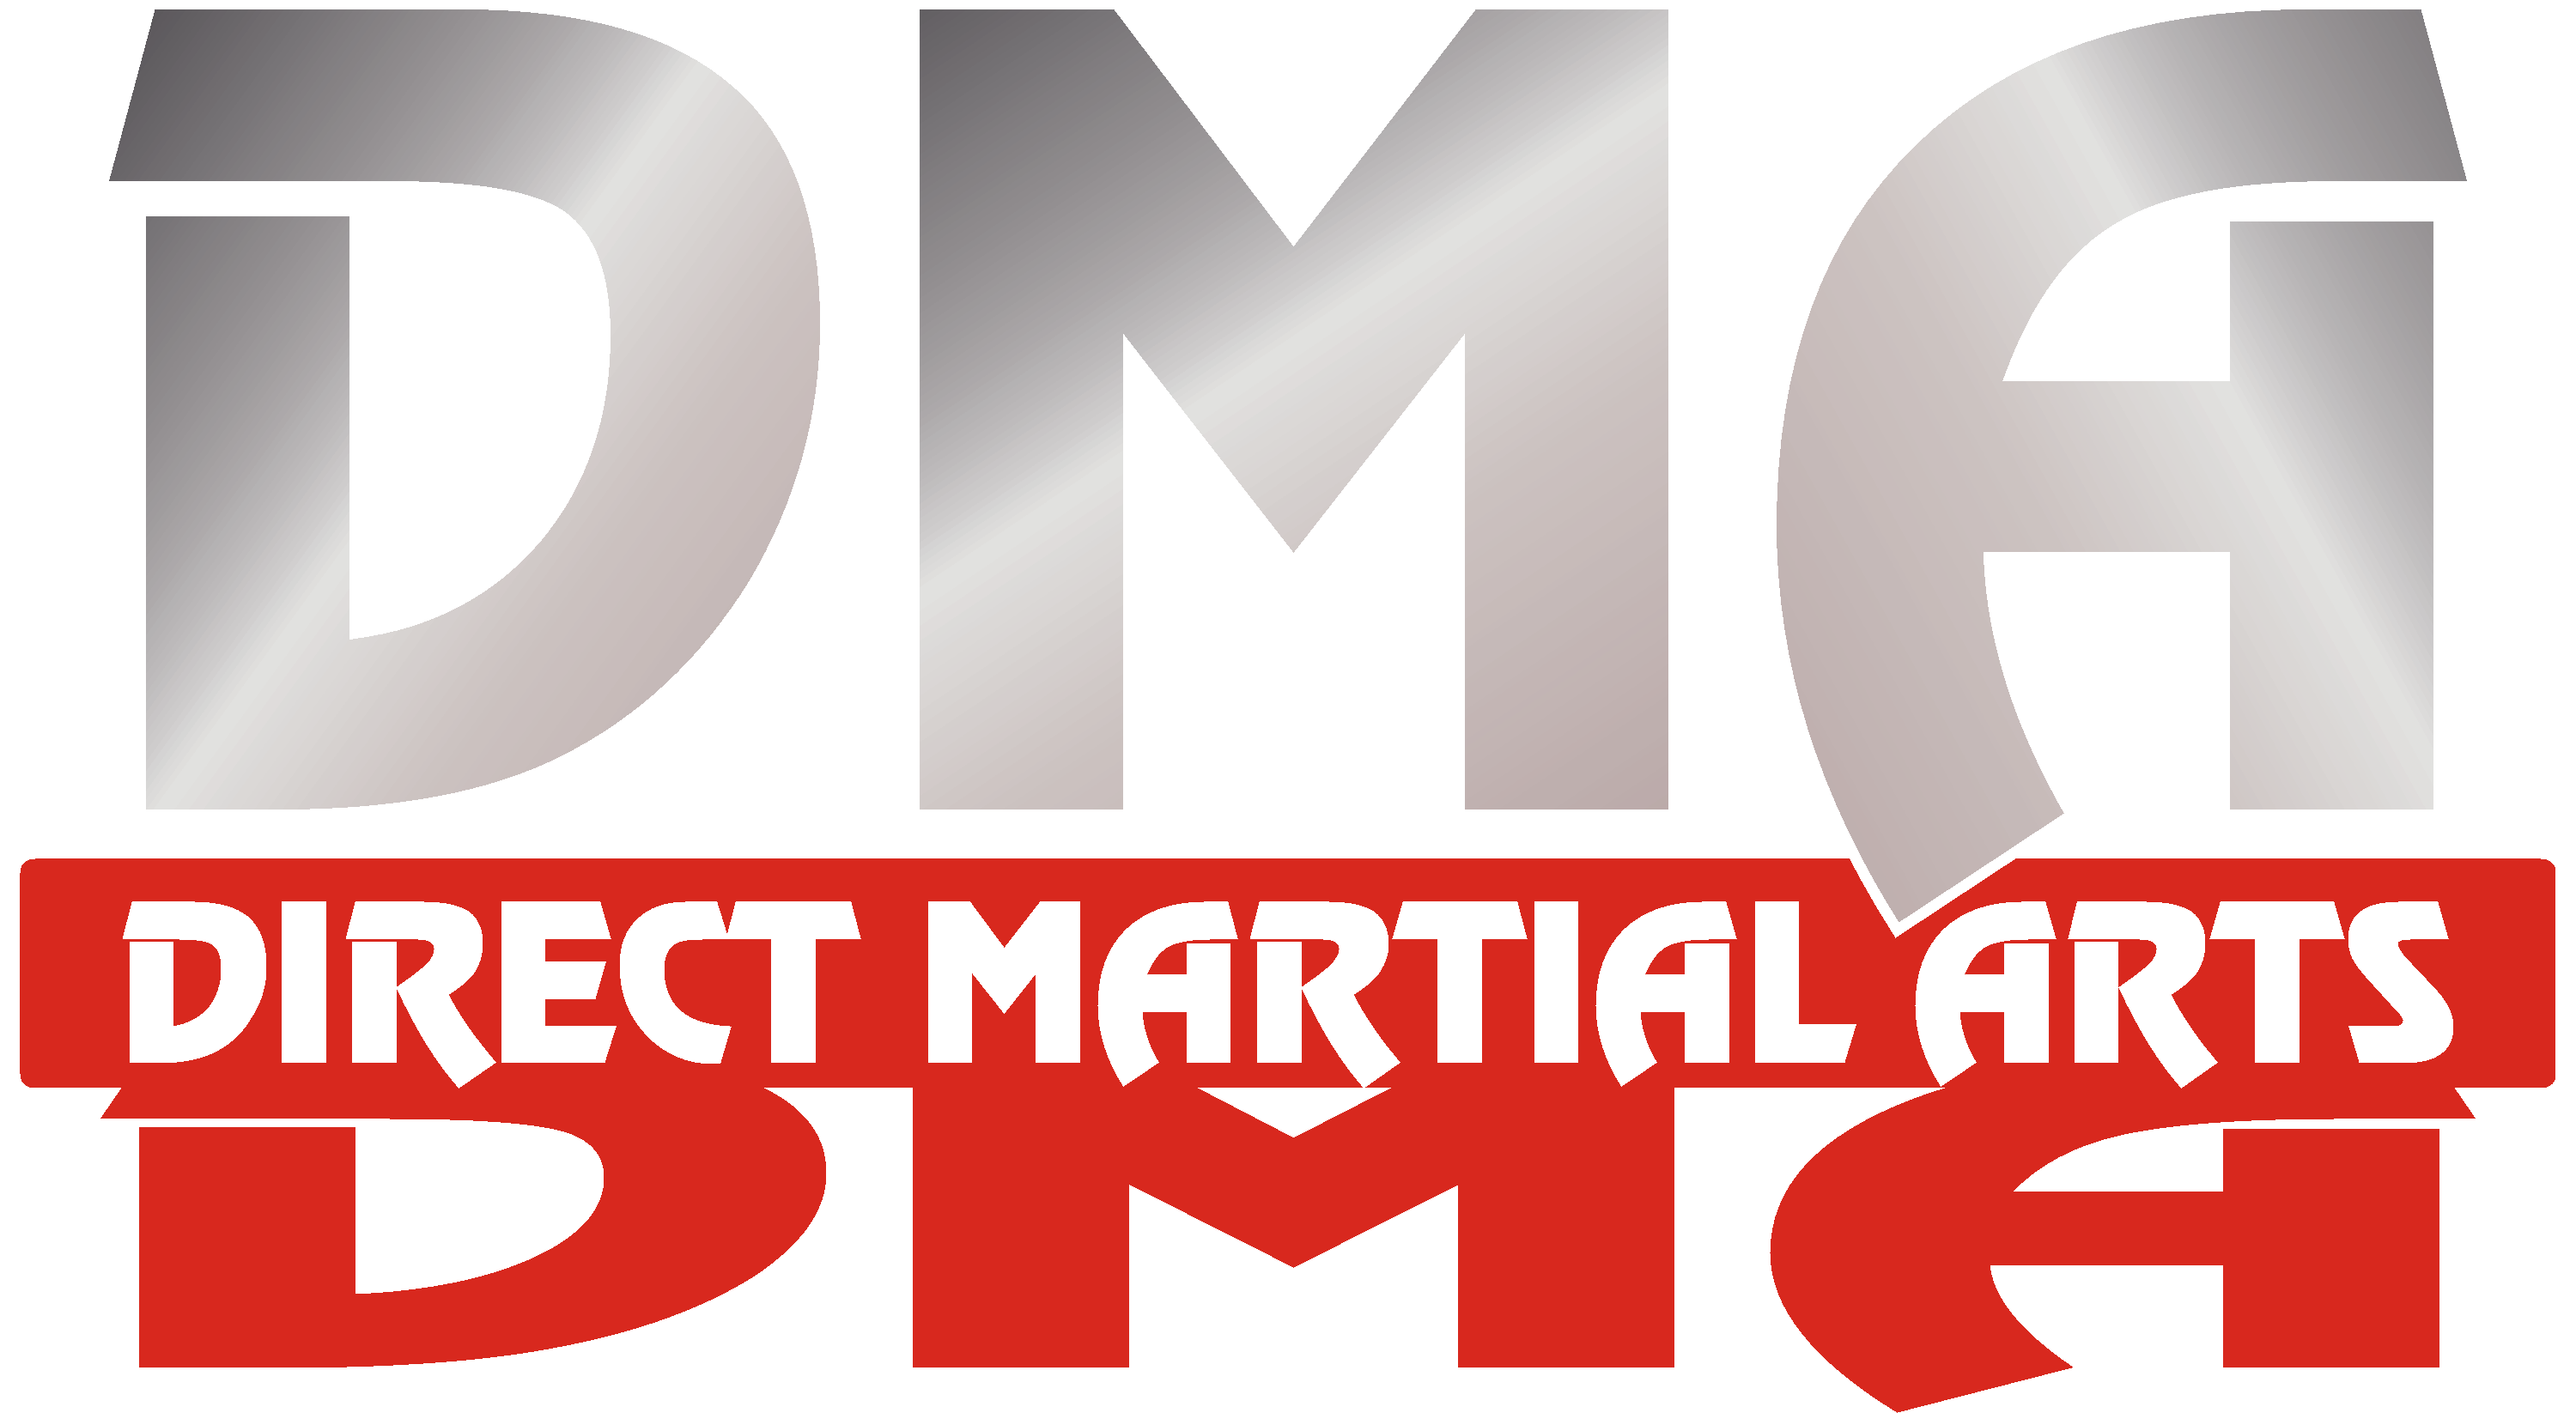 Direct Martial Arts School - Martial Arts Classes in Rotherham